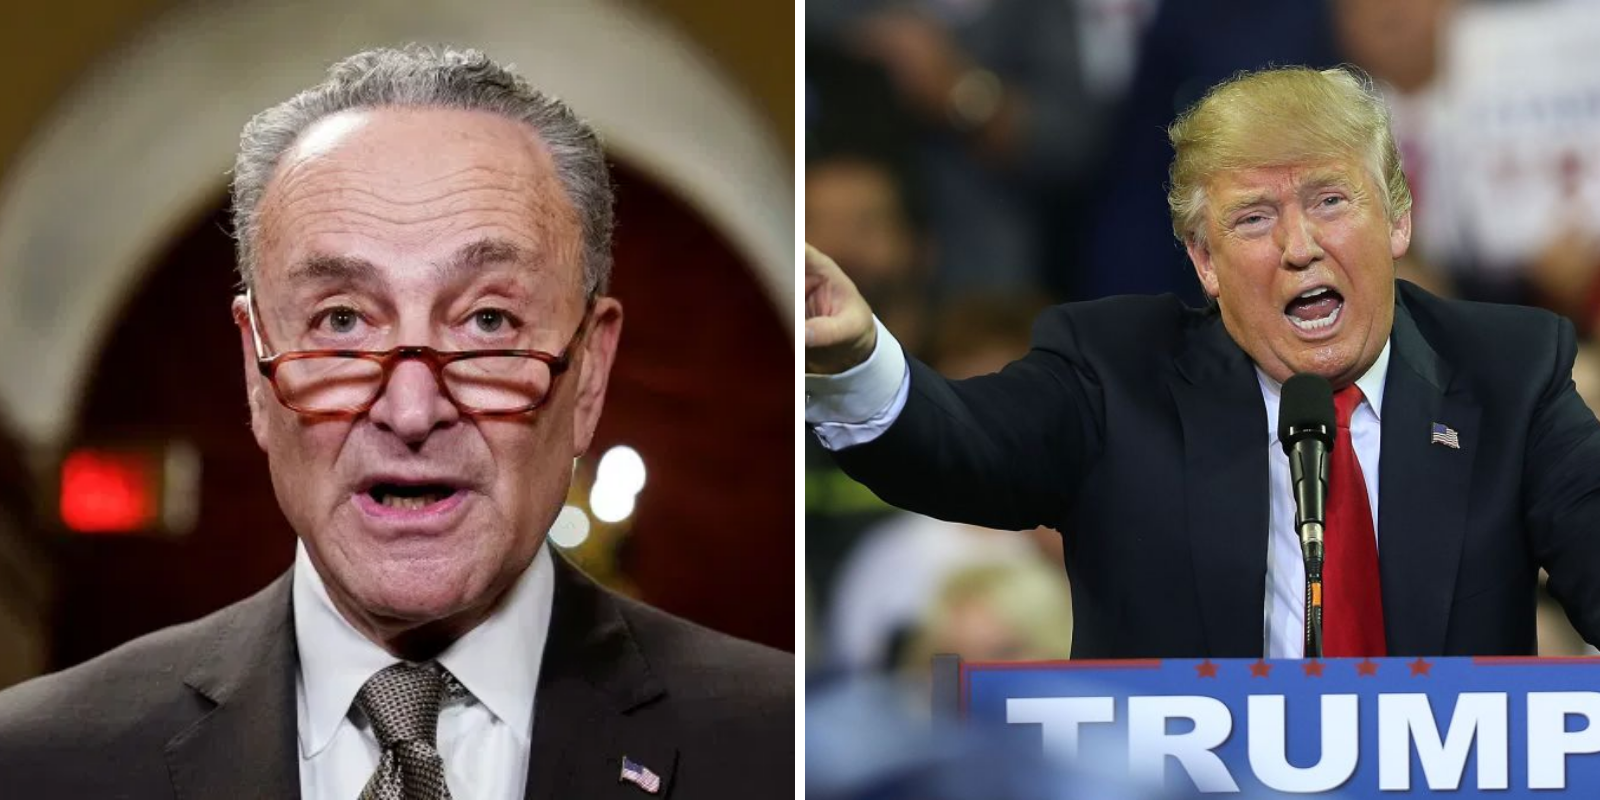 Trump says Schumer must pay 'severe price' for threatening two US Supreme Court Justices